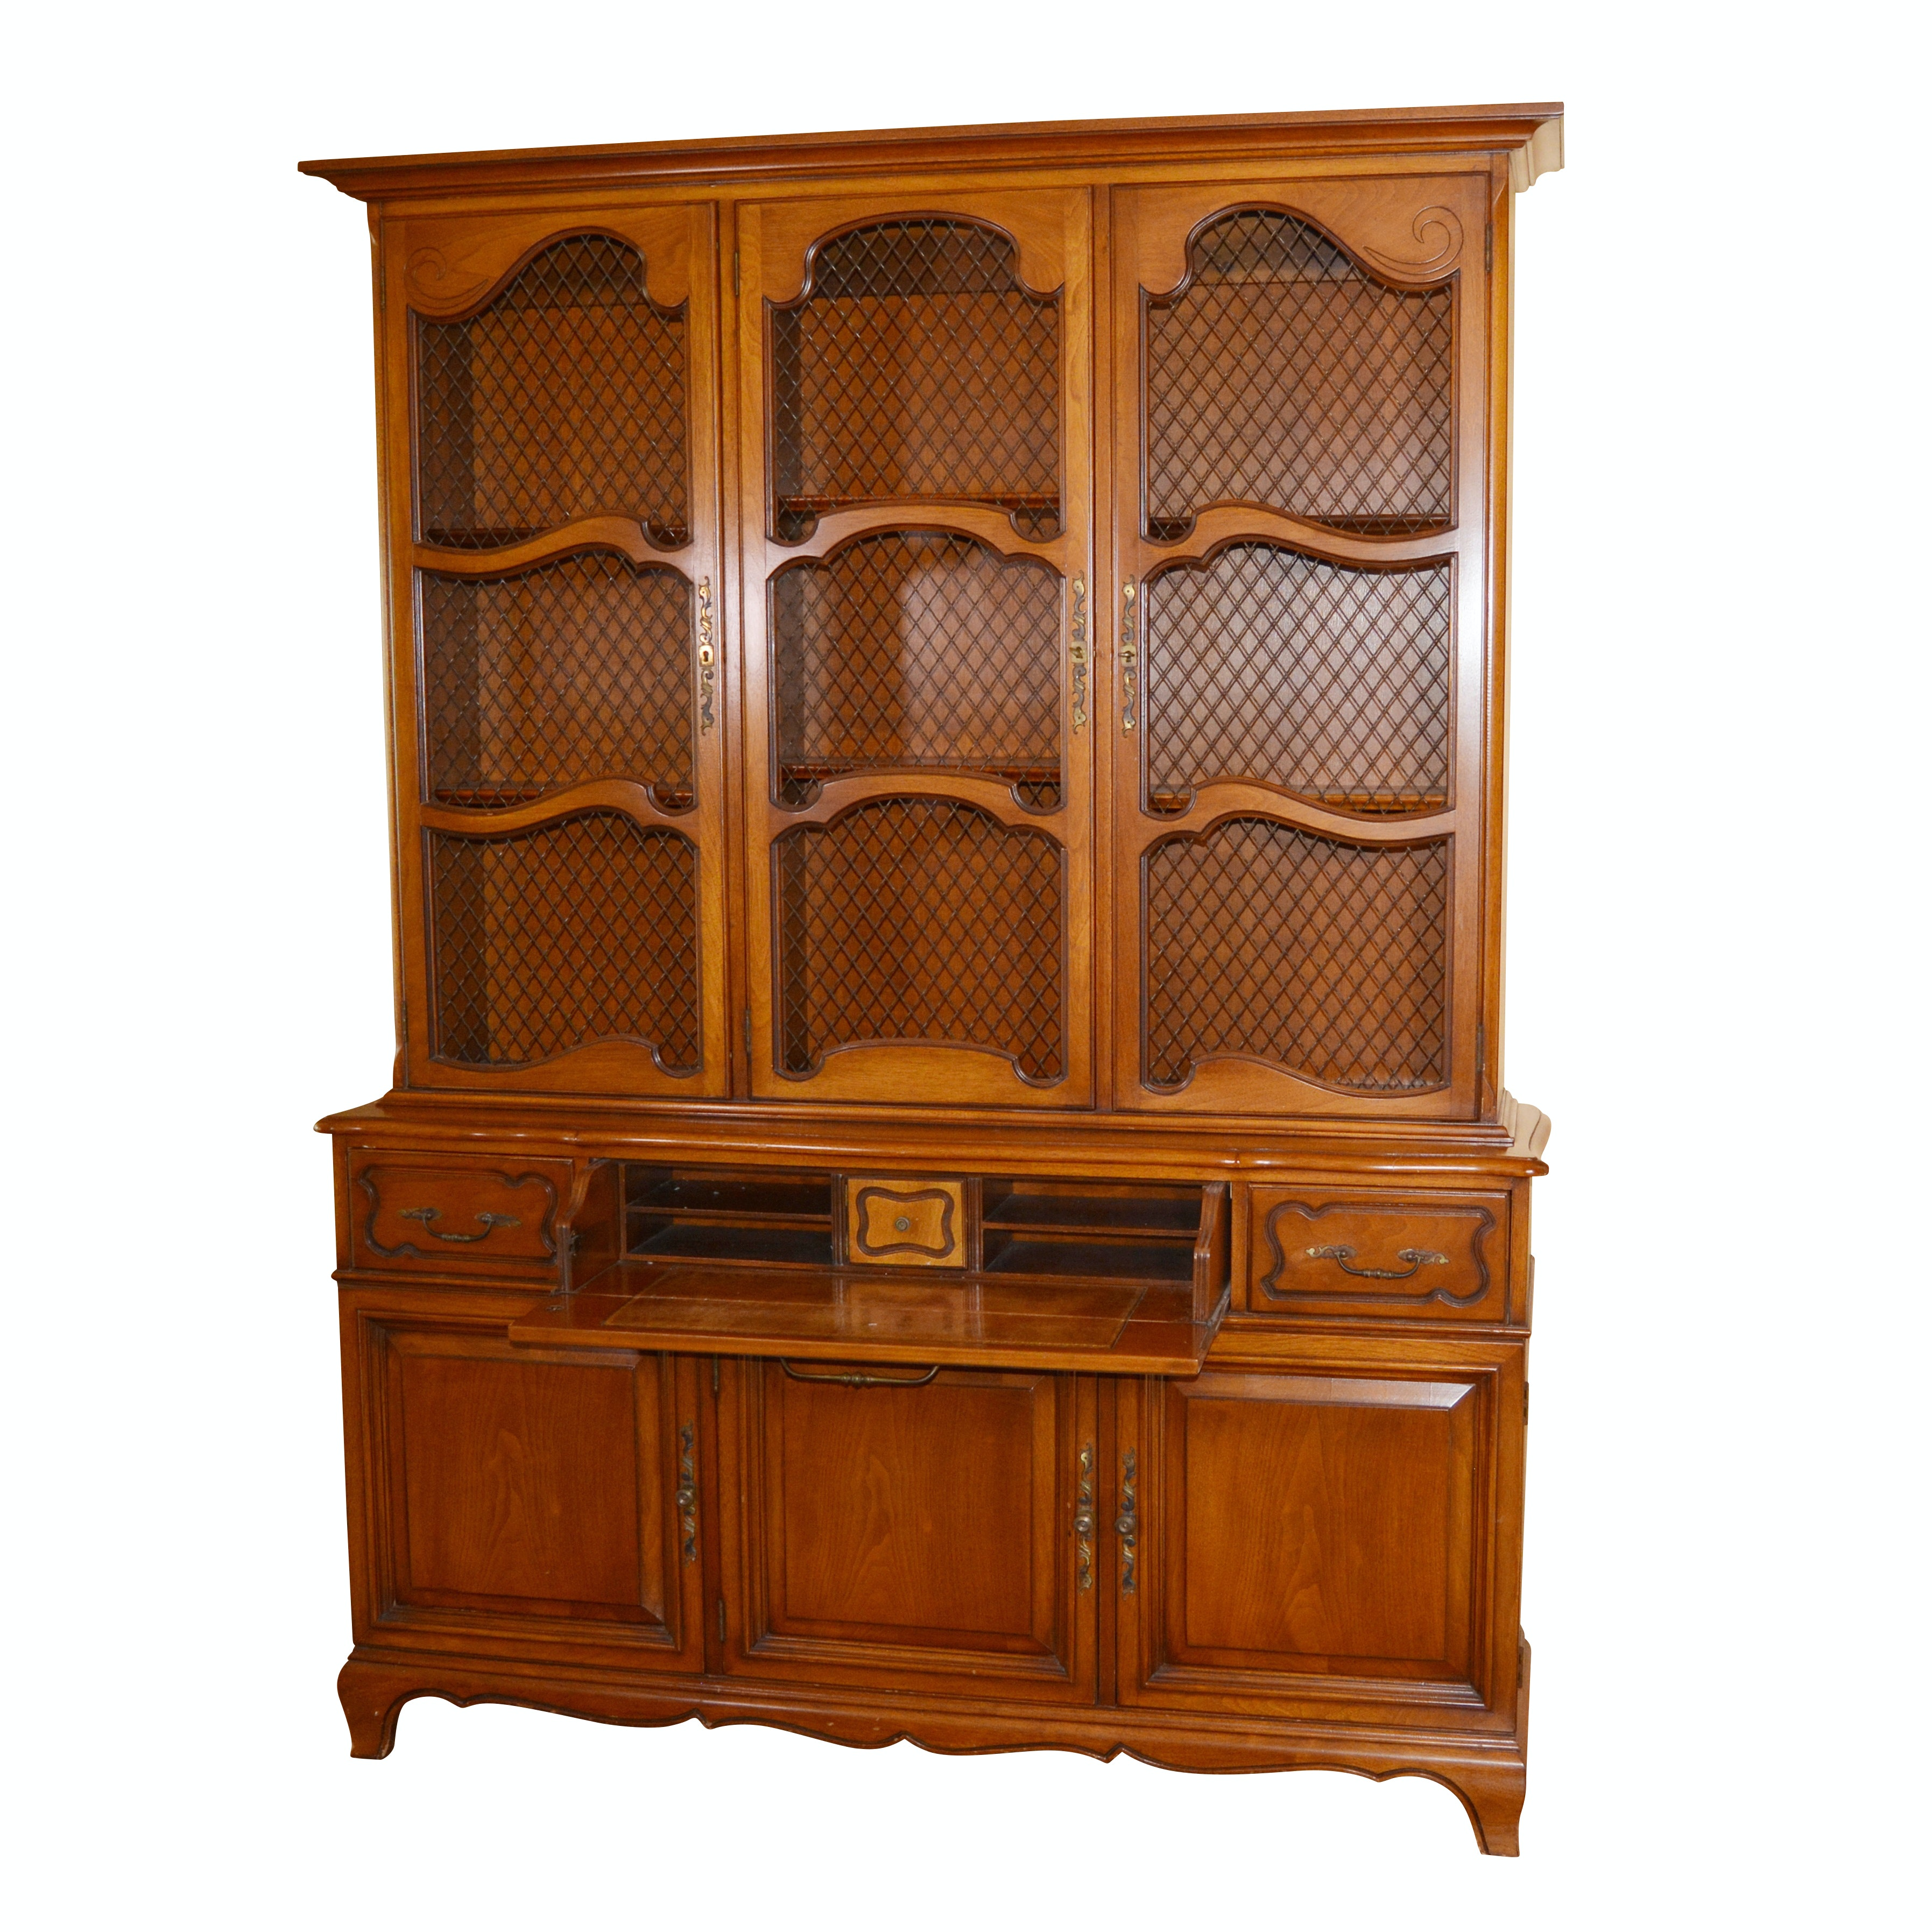 French Provincial Style Fruitwood Cabinet with Secretary, Mid-20th Century